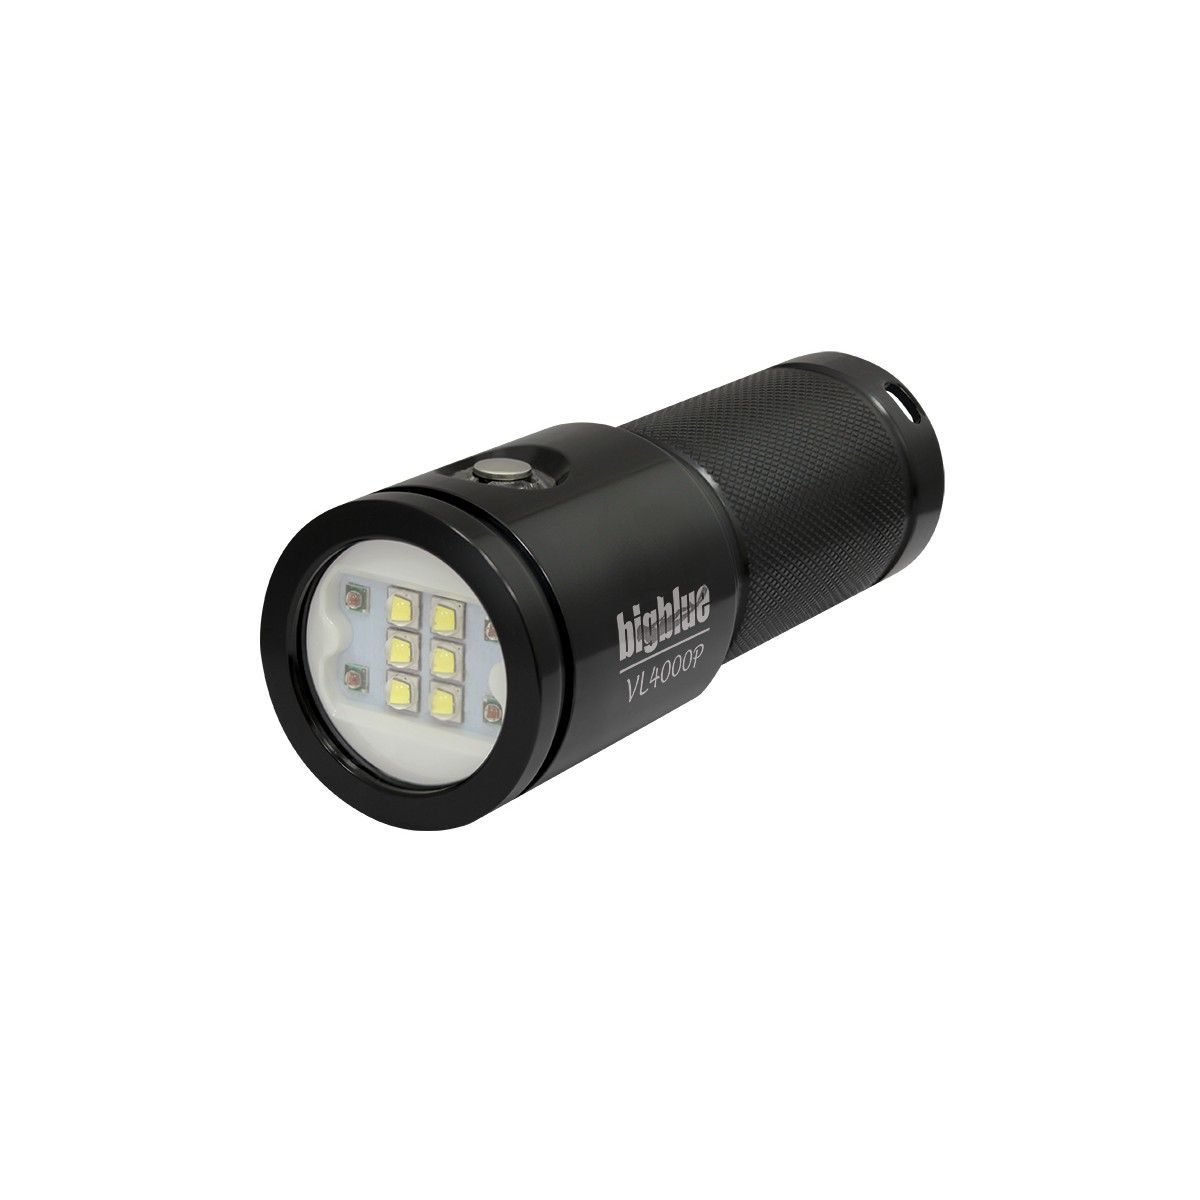 Bigblue 4000 Lumen Video Light (VL4000P)